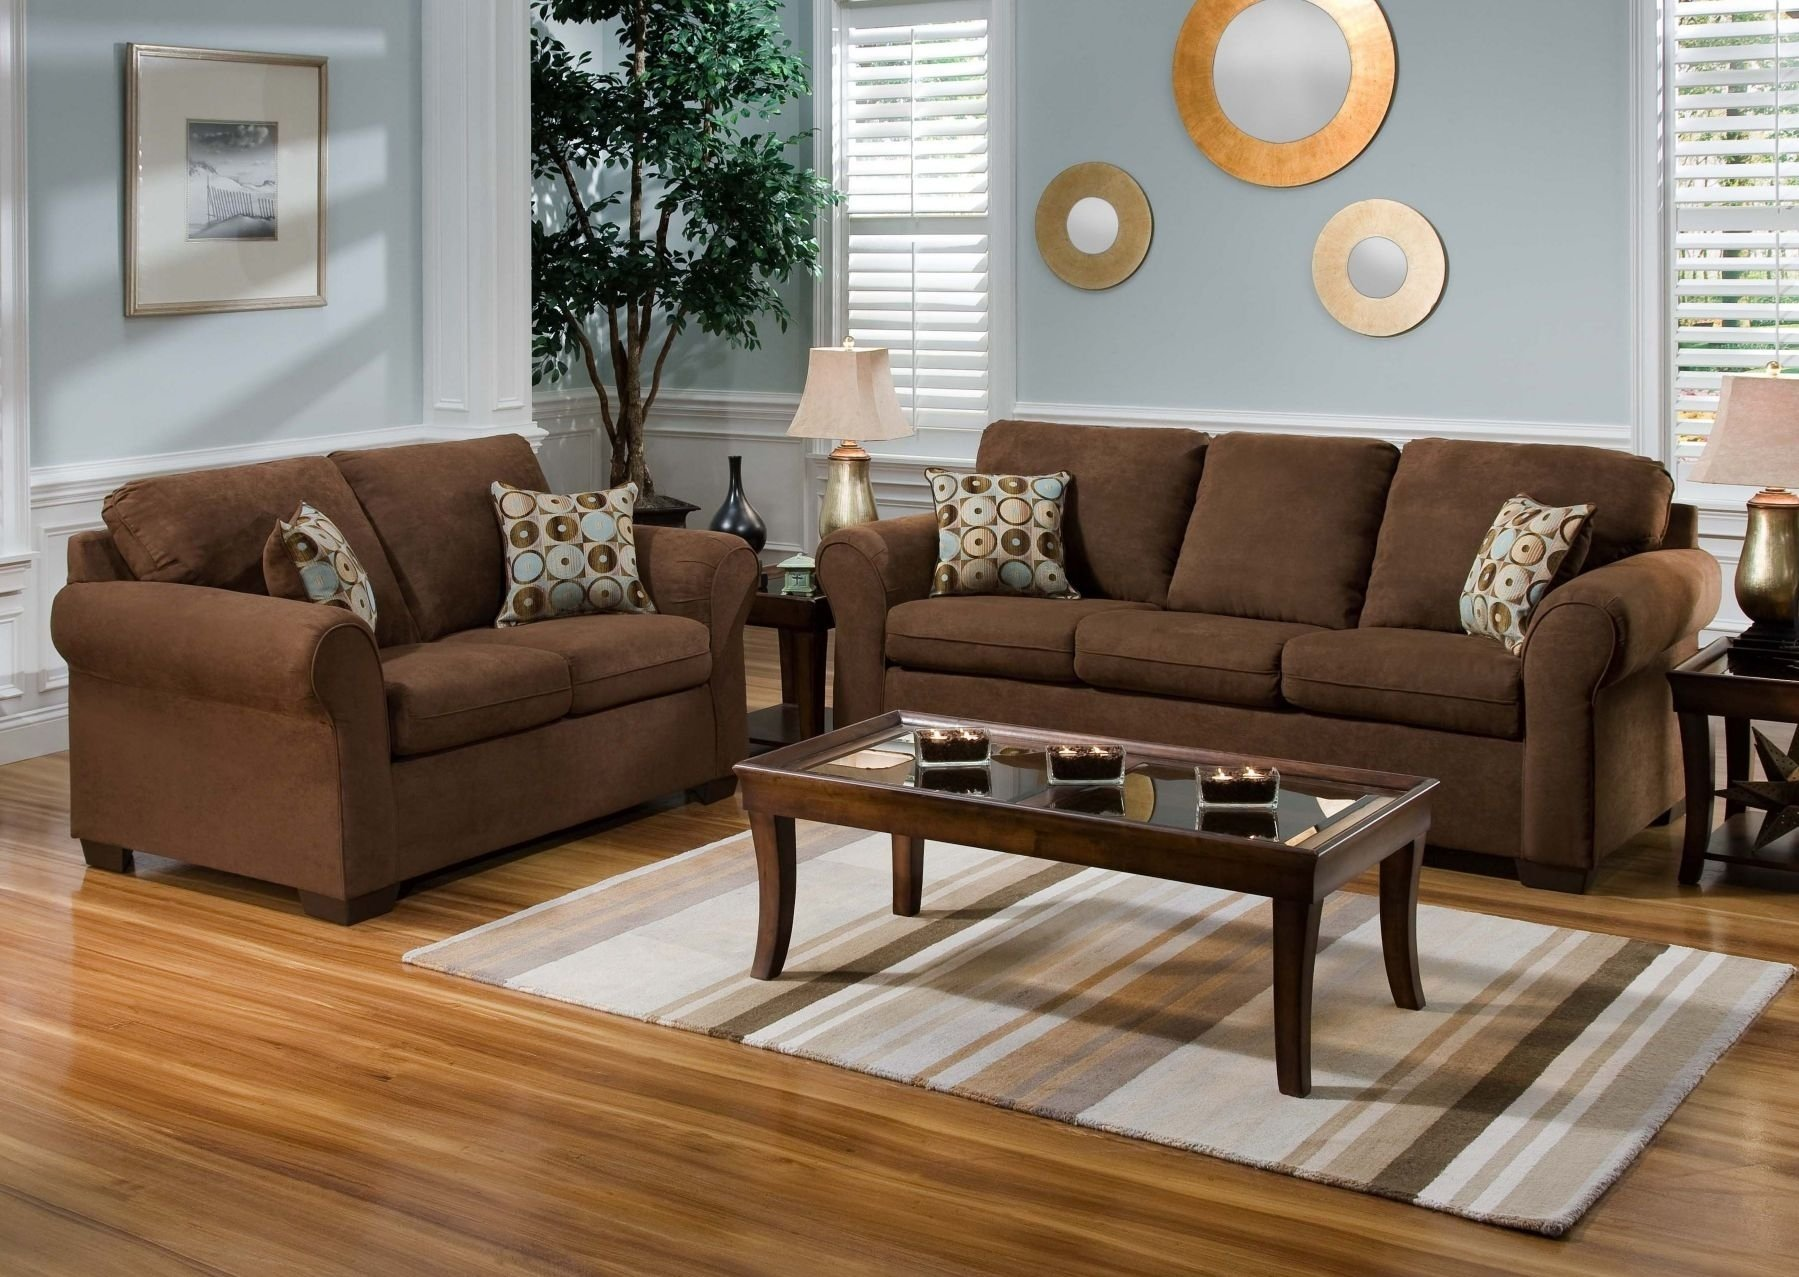 unbelievable living room paint ideas with brown couch and blue